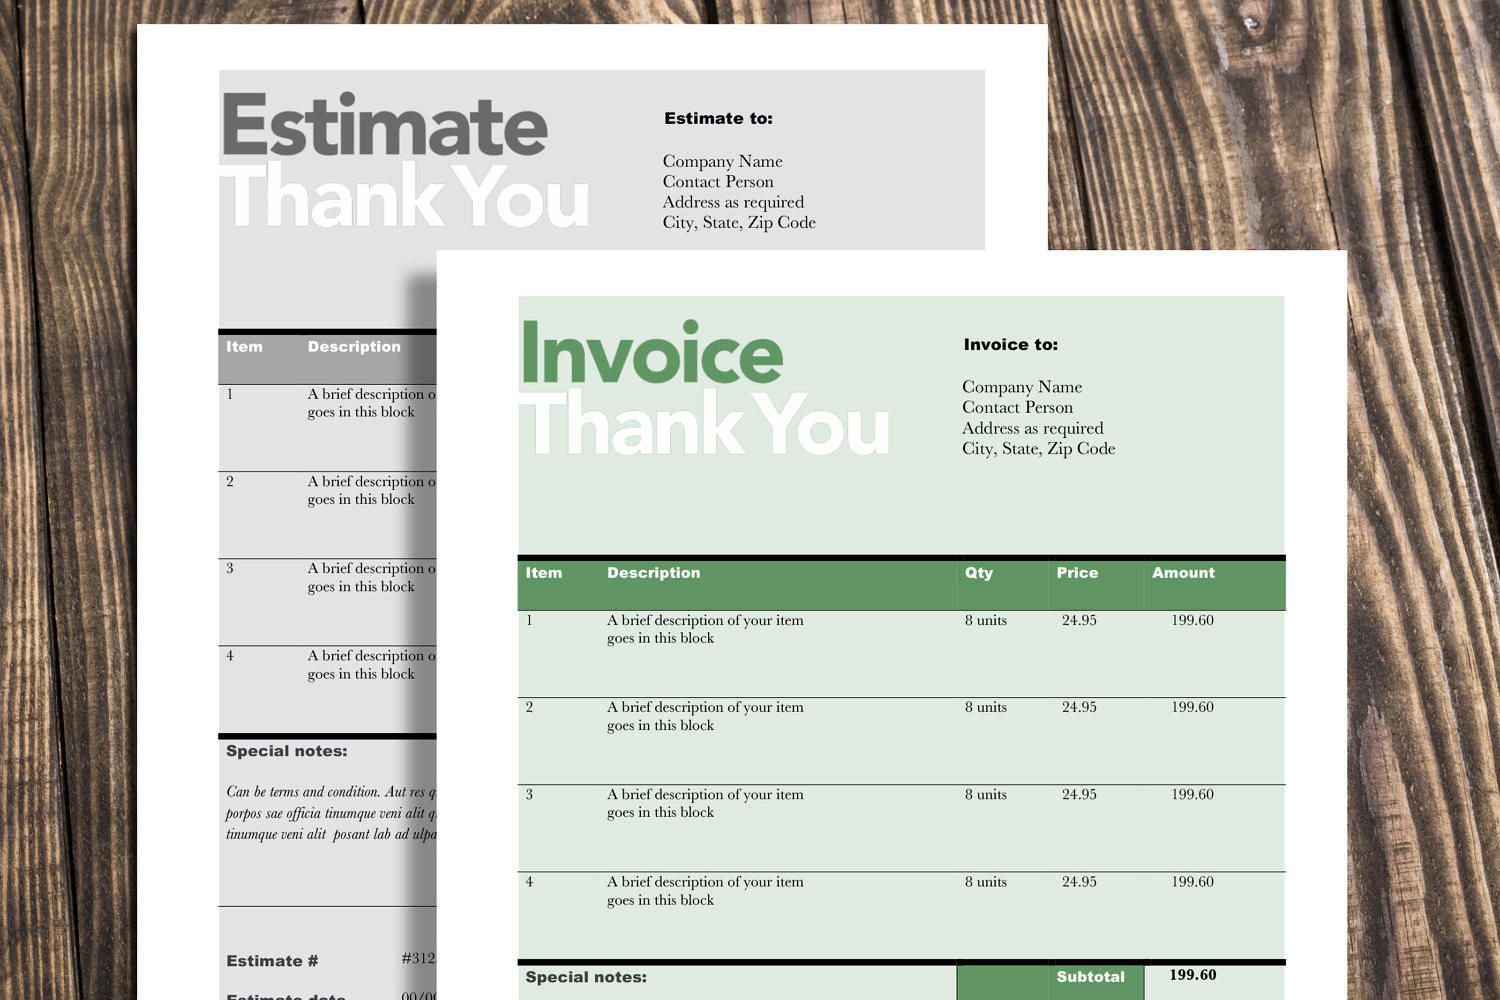 Editable Invoice   Estimate Template   Rumble Design Store Printable Invoice Estimate template  Editable Template  Invoice Template